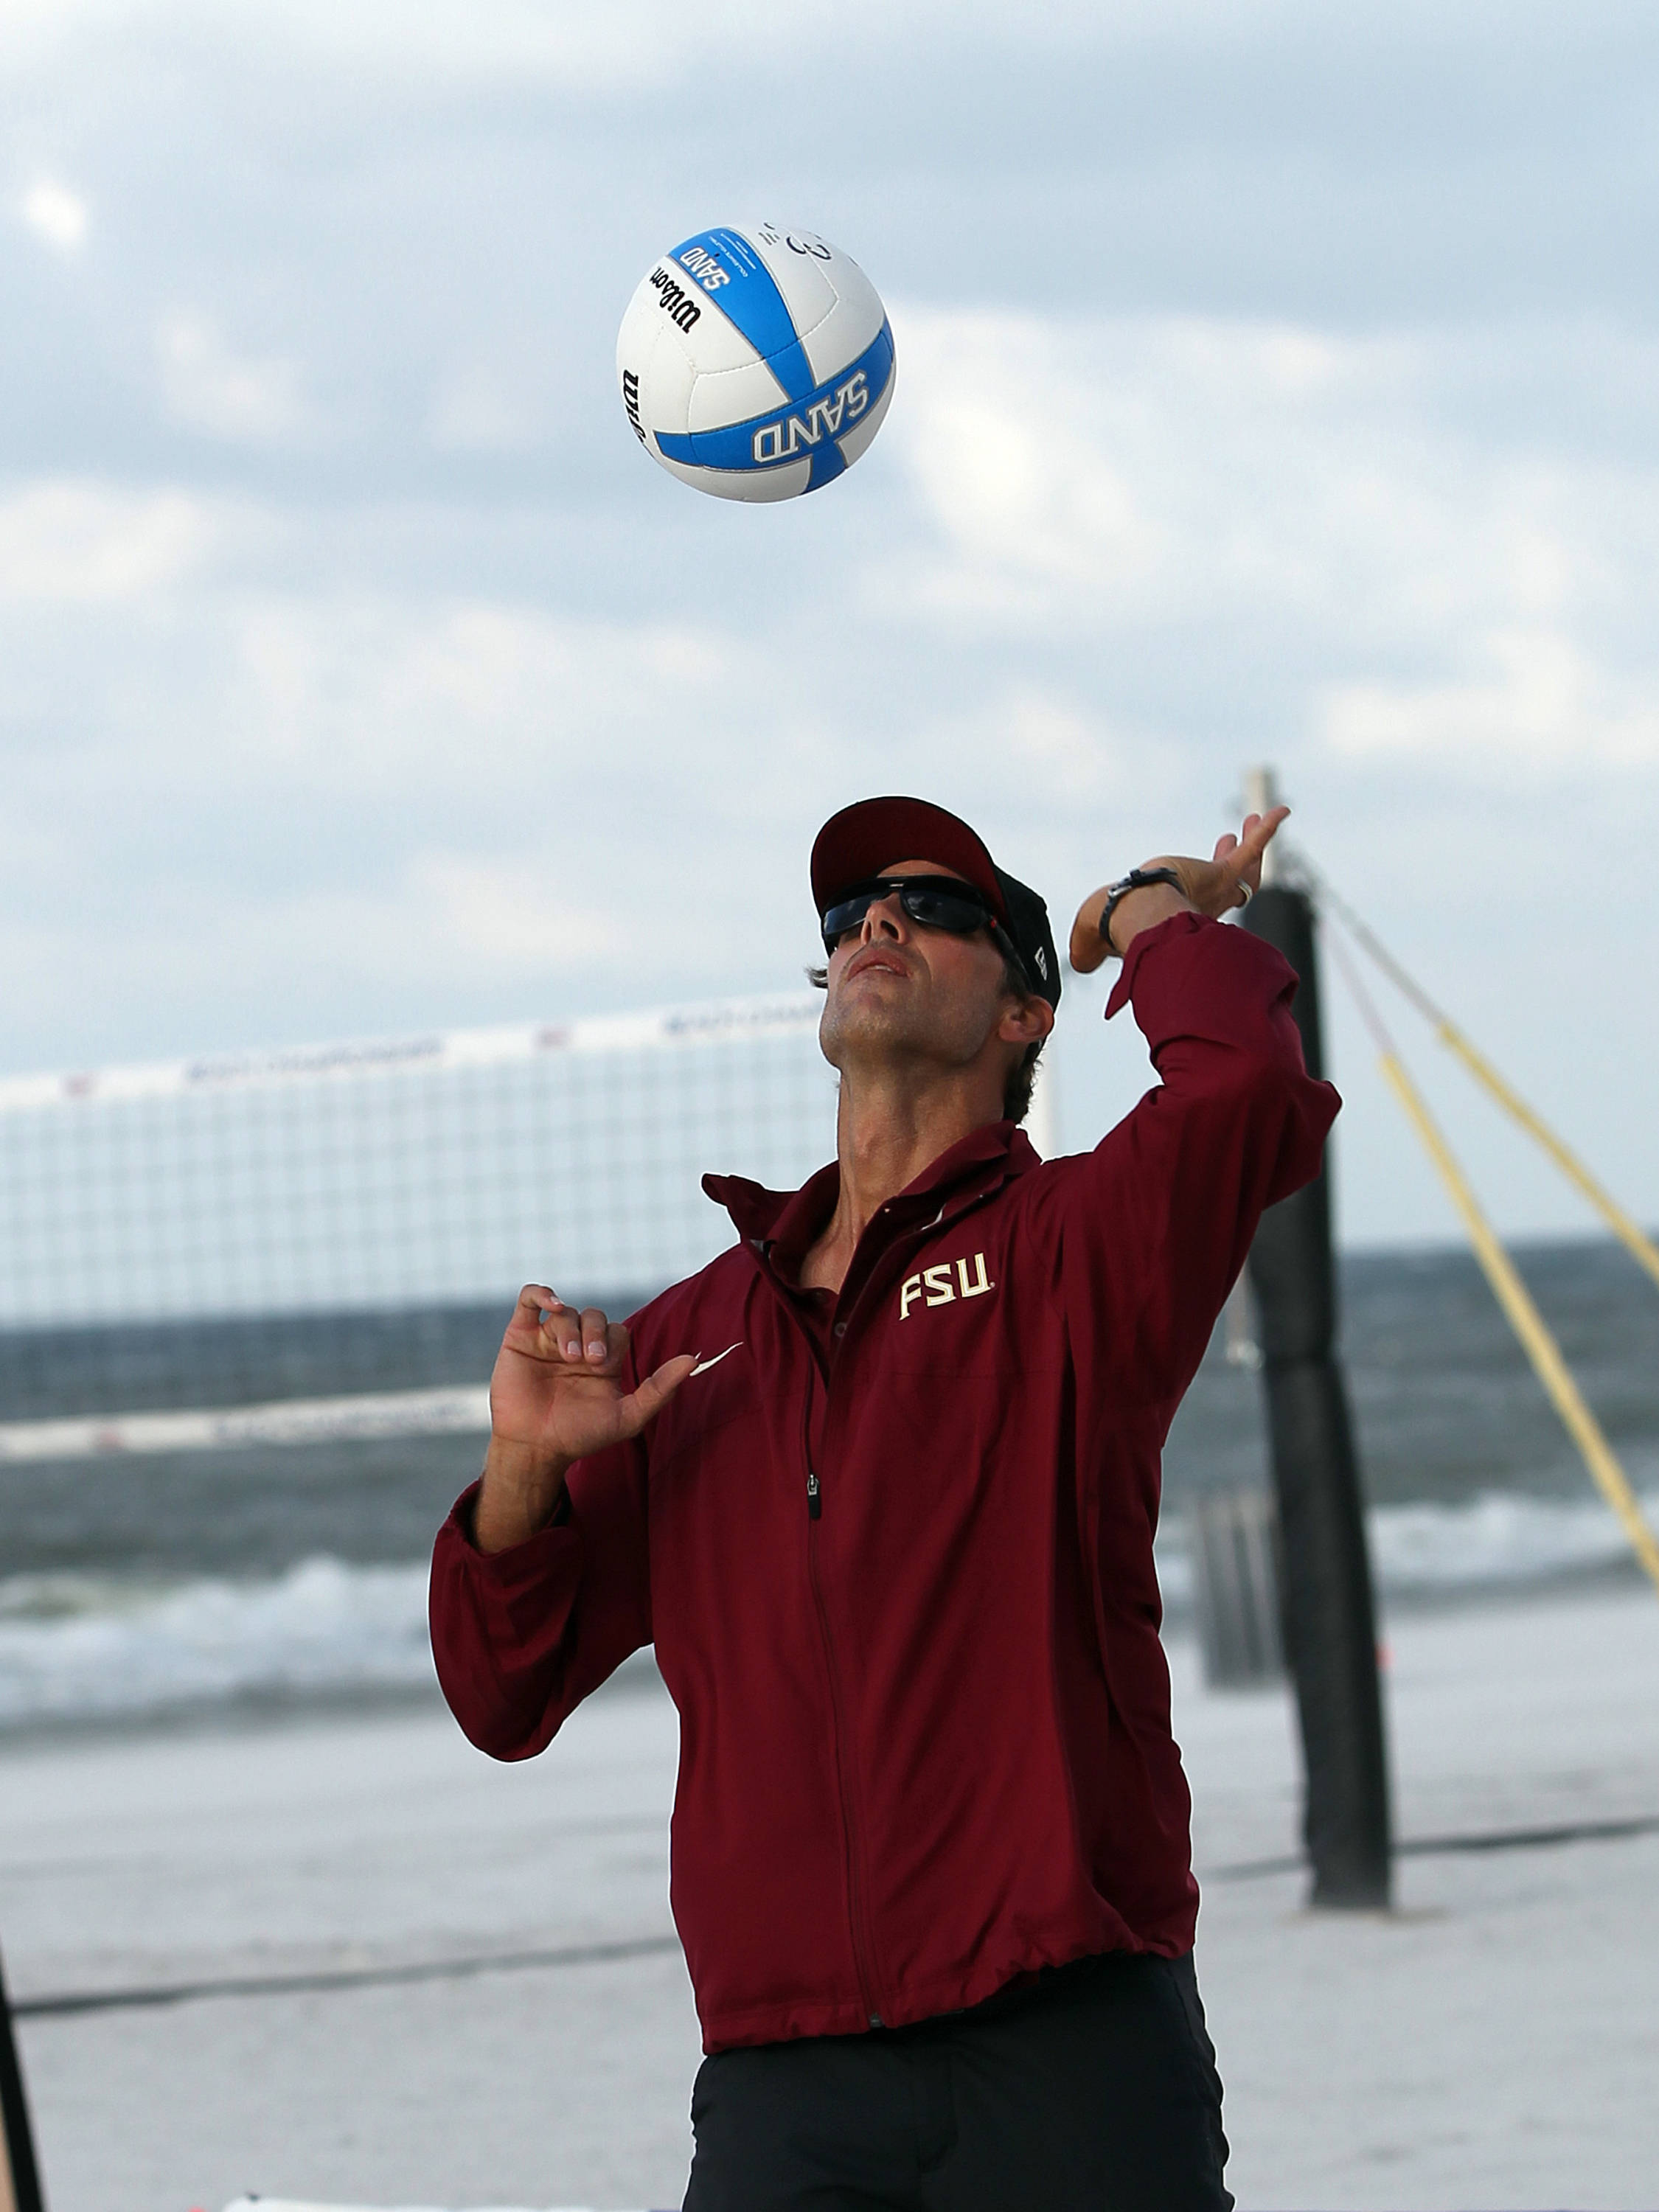 Assistant Coach Brian Corso, AVCA Collegiate Sand Volleyball National  Championships - Pairs,  Gulf Shores, Alabama, 05/05/13 . (Photo by Steve Musco)